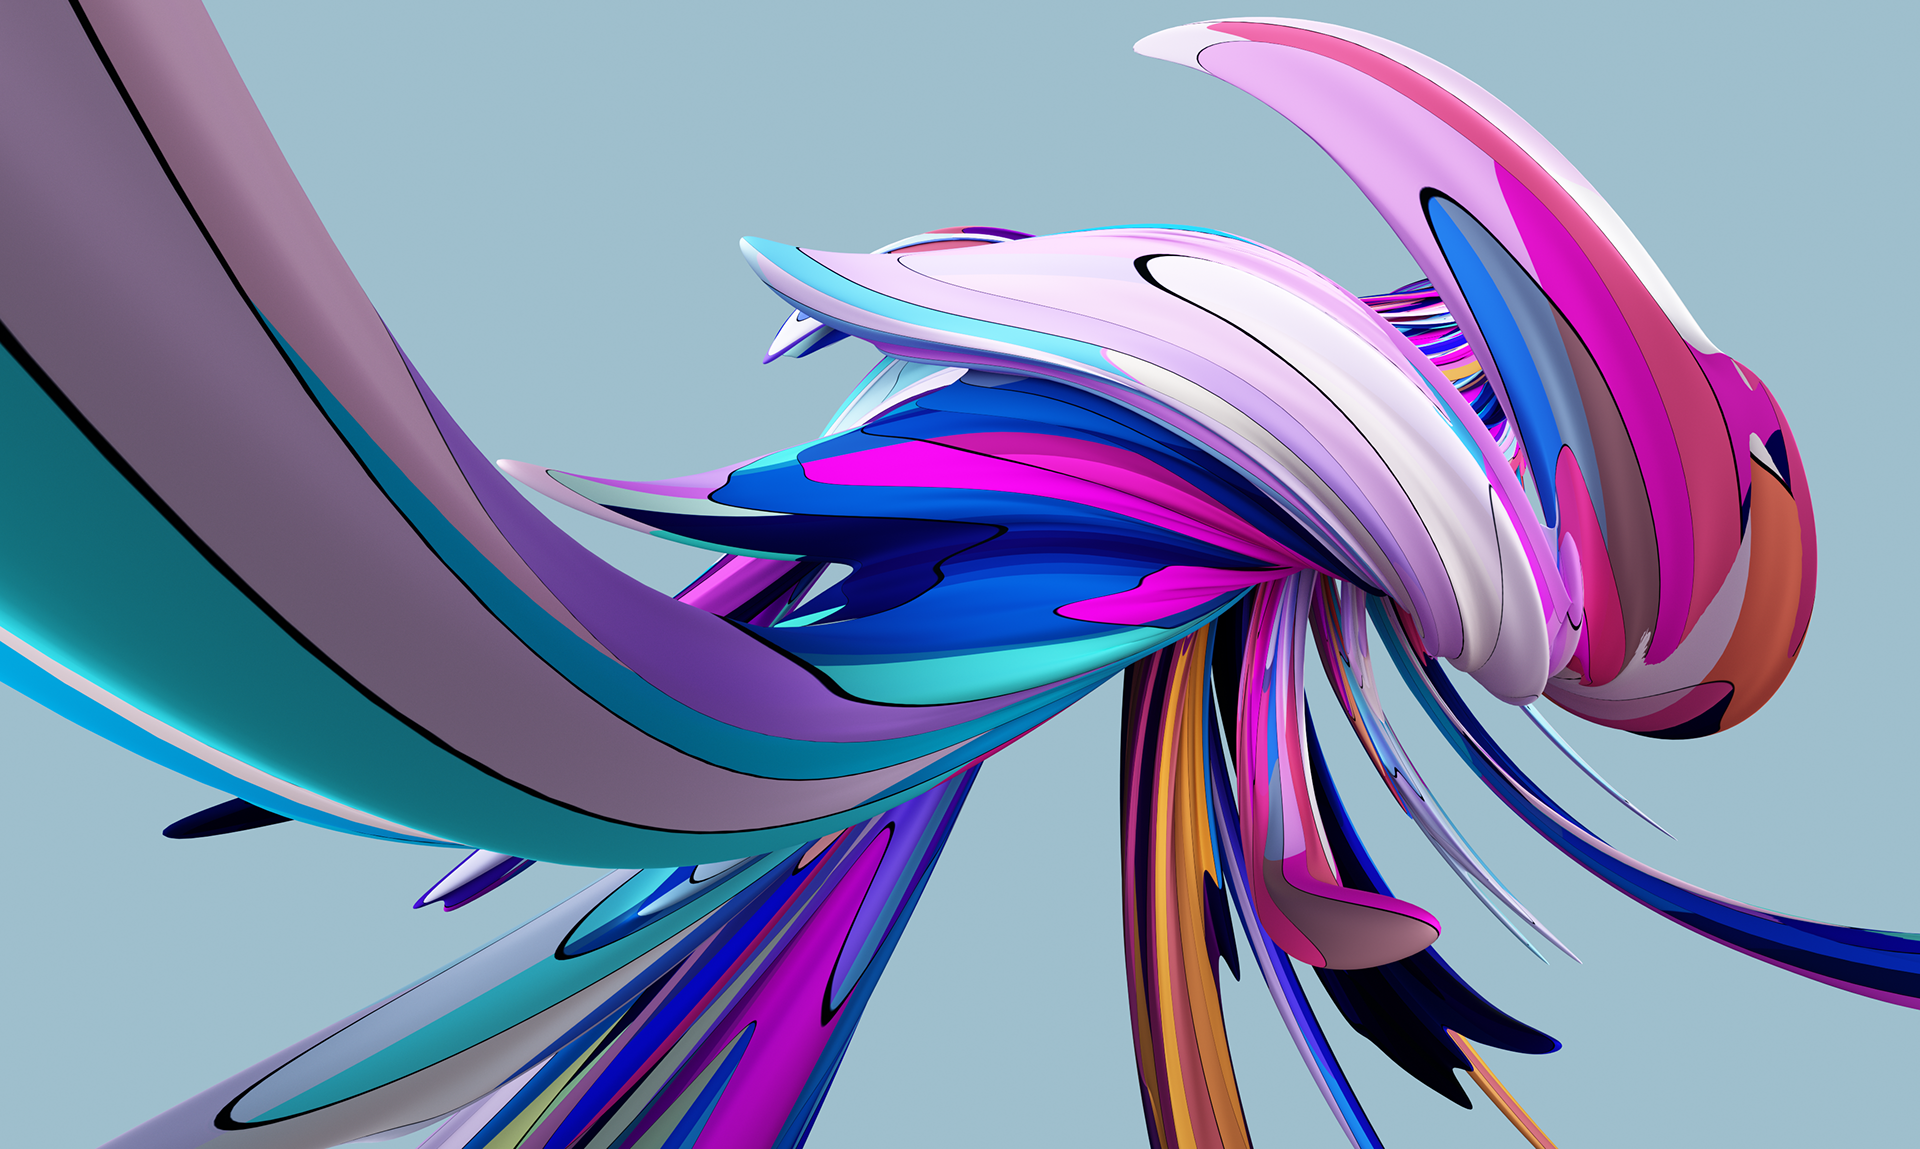 Danny Ivan 3d Imagery Maker Curved Lines Series 1 0 Abstract Imagery Homescreen Wallpaper